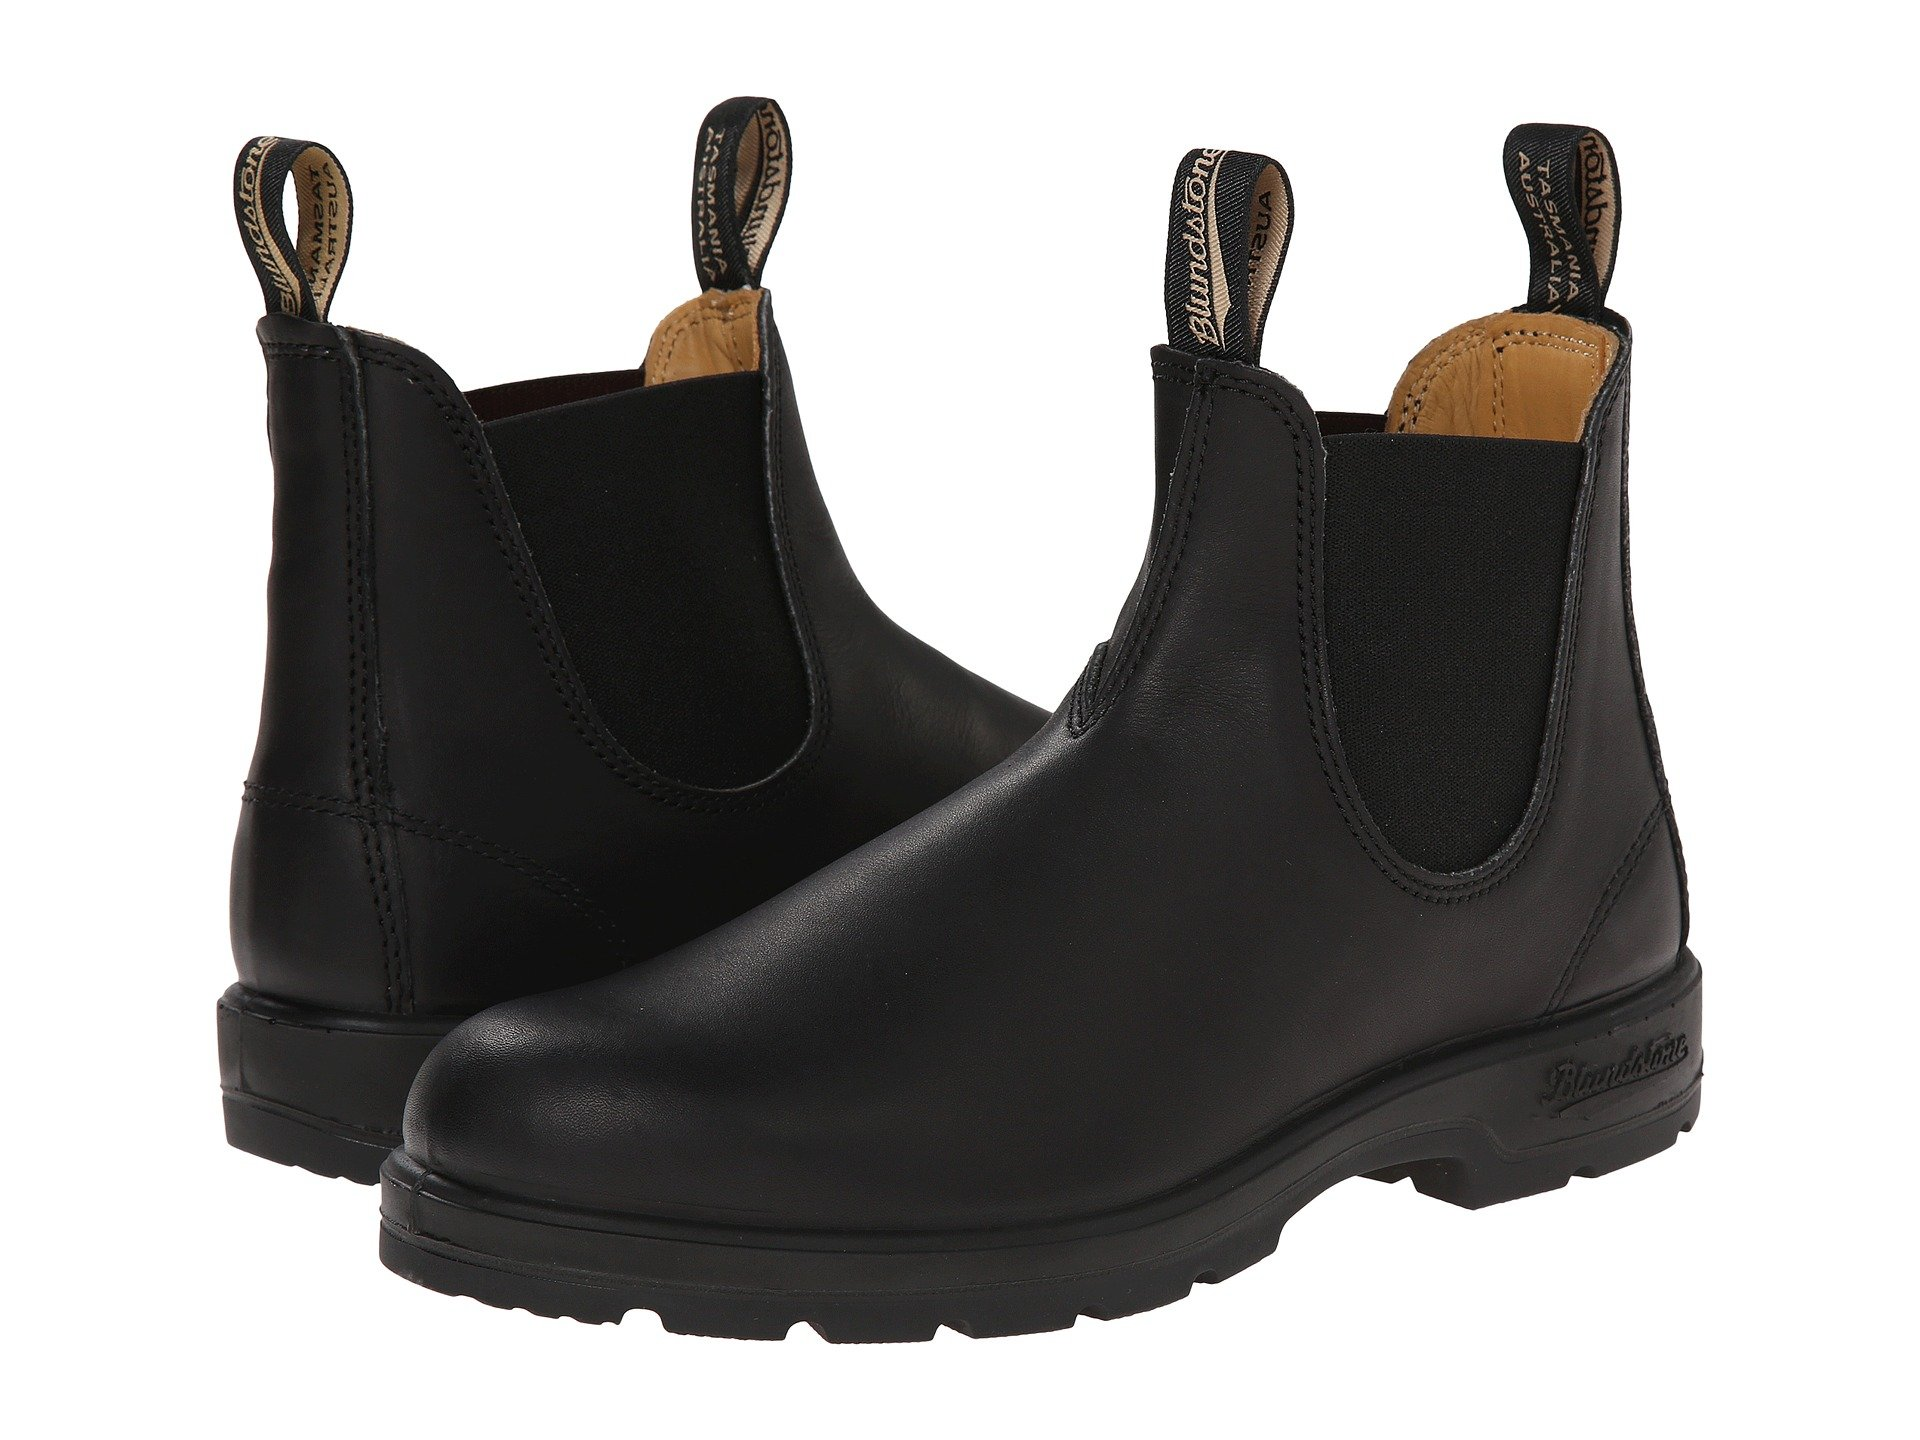 35382a8ed45e Women s Blundstone Boots + FREE SHIPPING